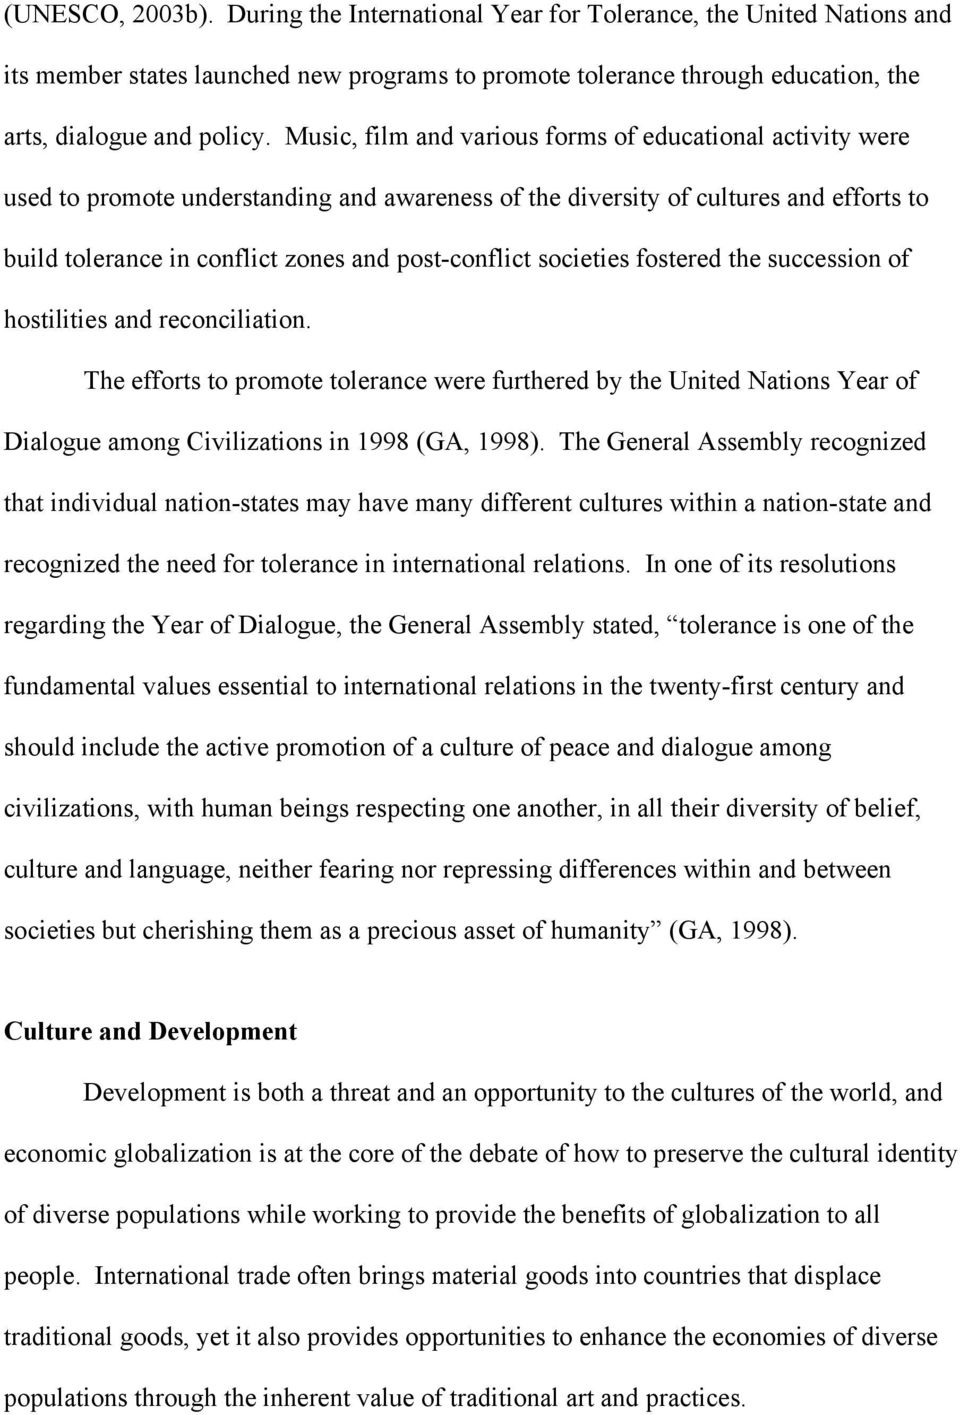 societies fostered the succession of hostilities and reconciliation. The efforts to promote tolerance were furthered by the United Nations Year of Dialogue among Civilizations in 1998 (GA, 1998).